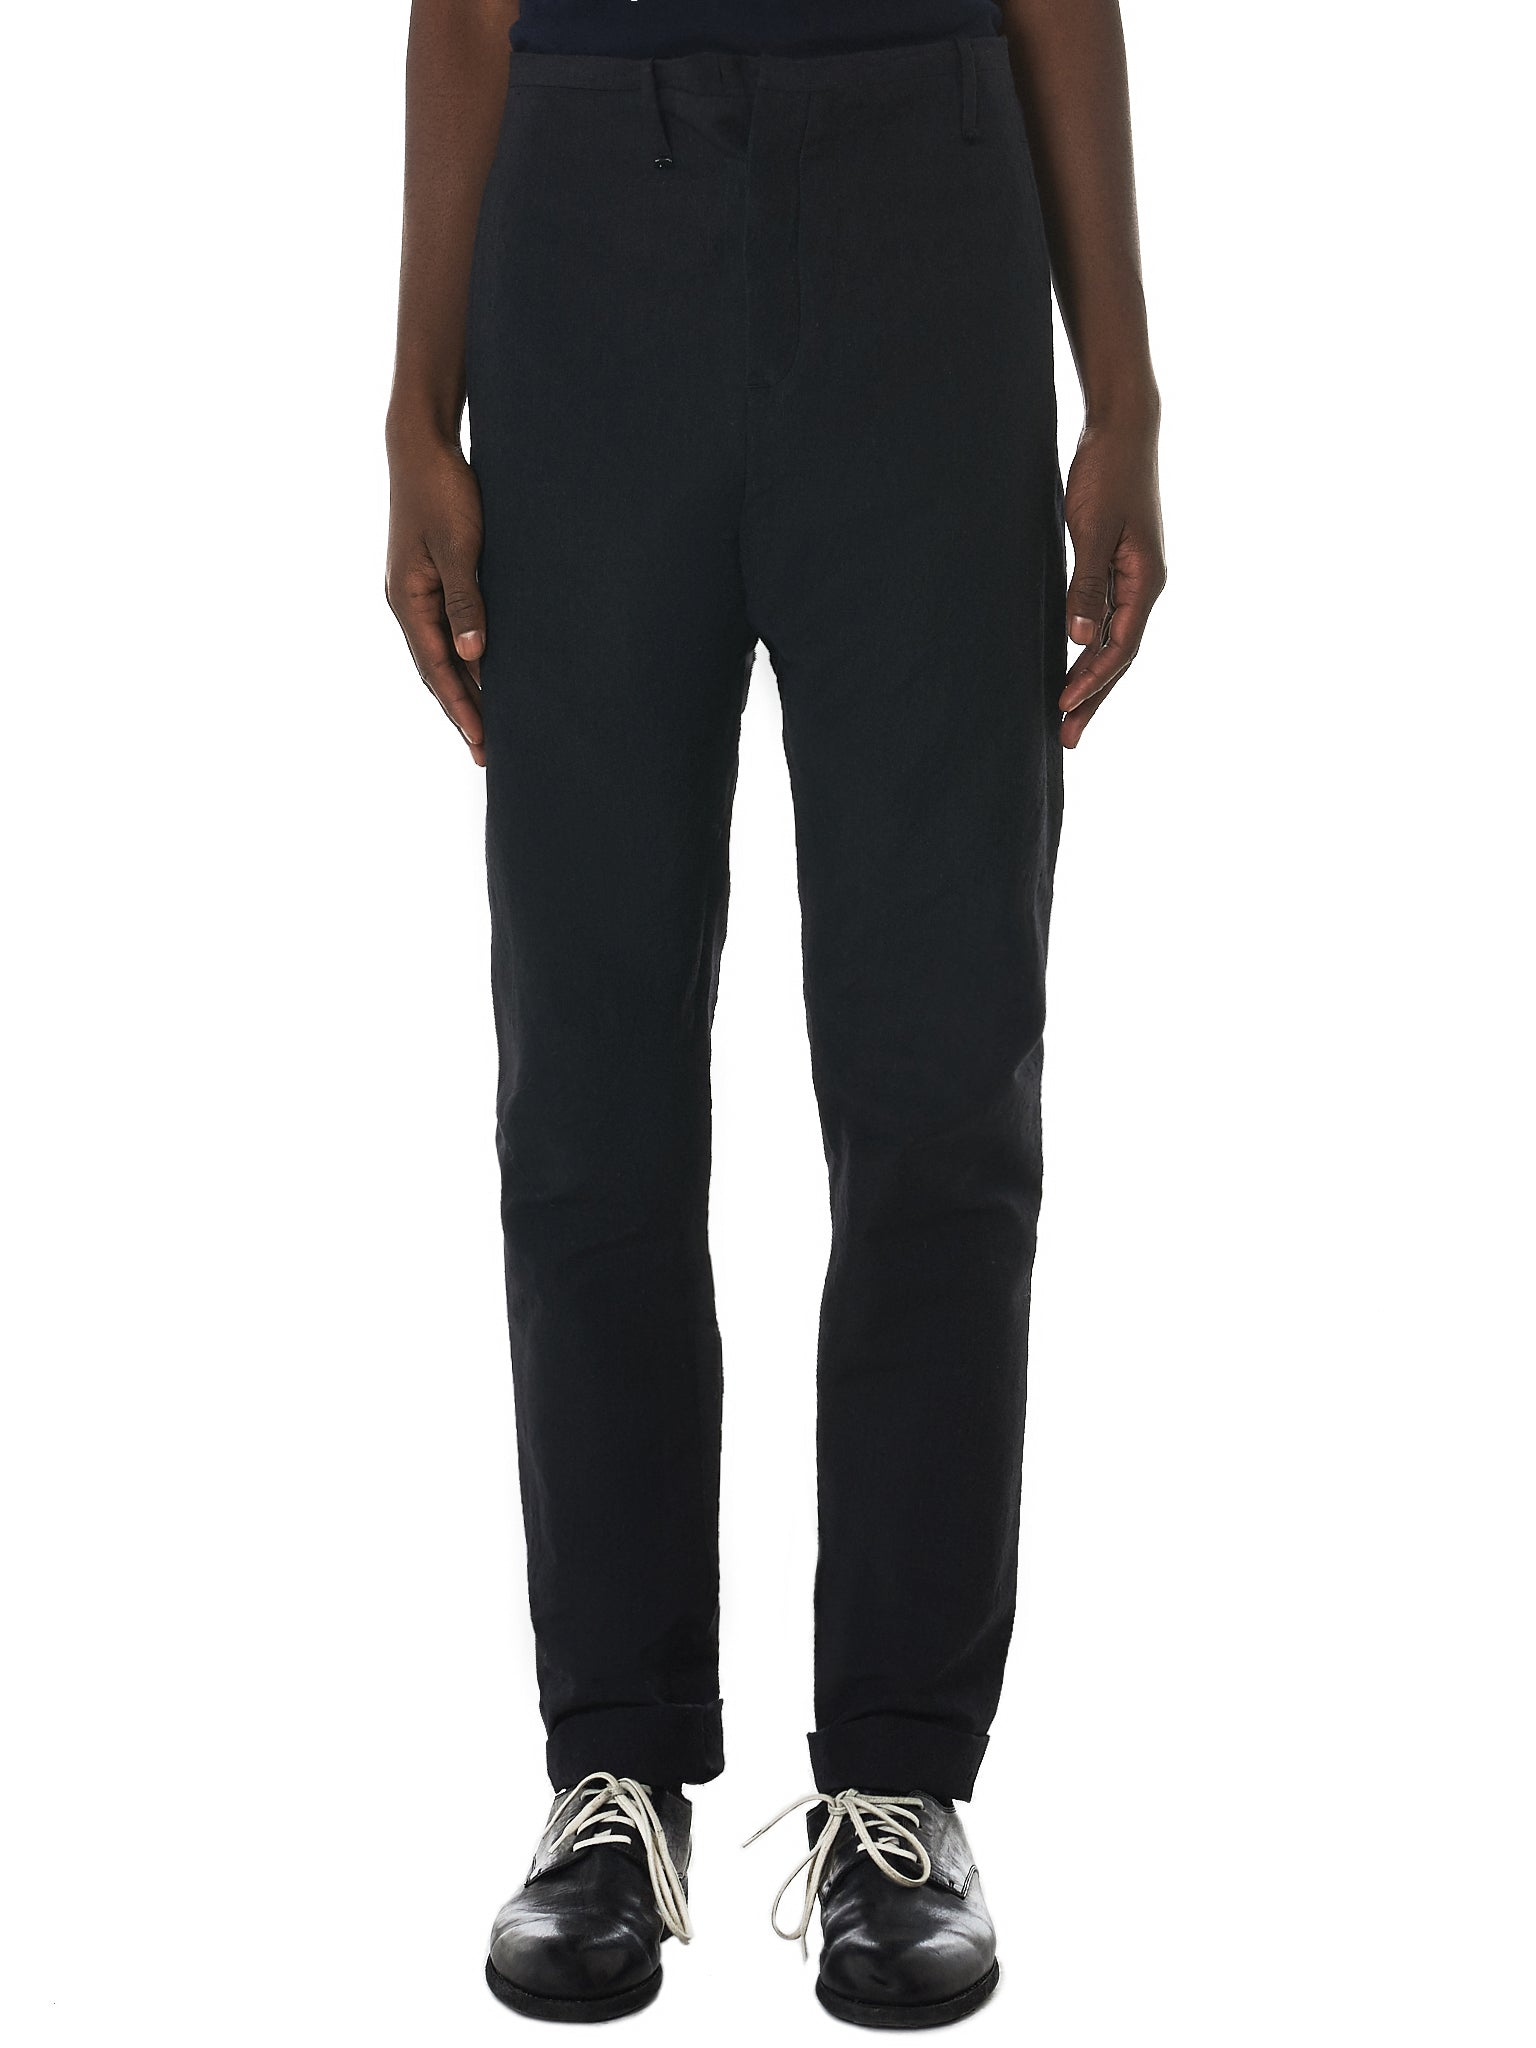 Label Under Construction Trousers - Hlorenzo Front